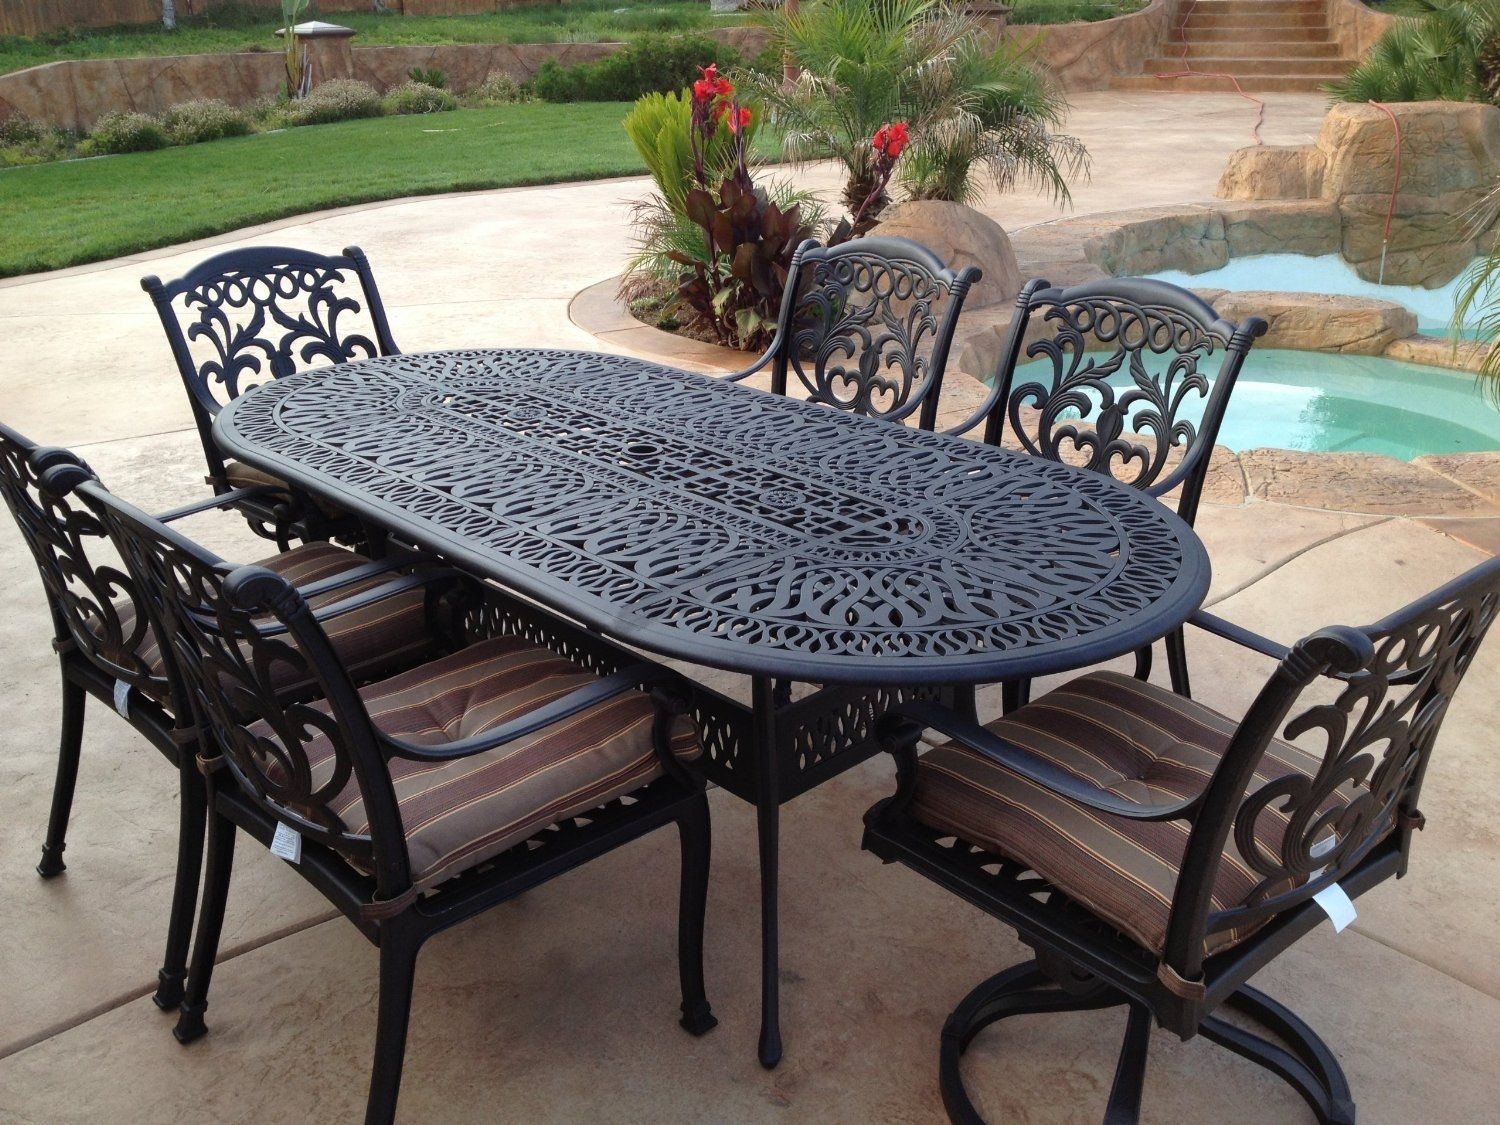 Cast Iron Patio Set Table Chairs Garden Furniture Wrought Iron